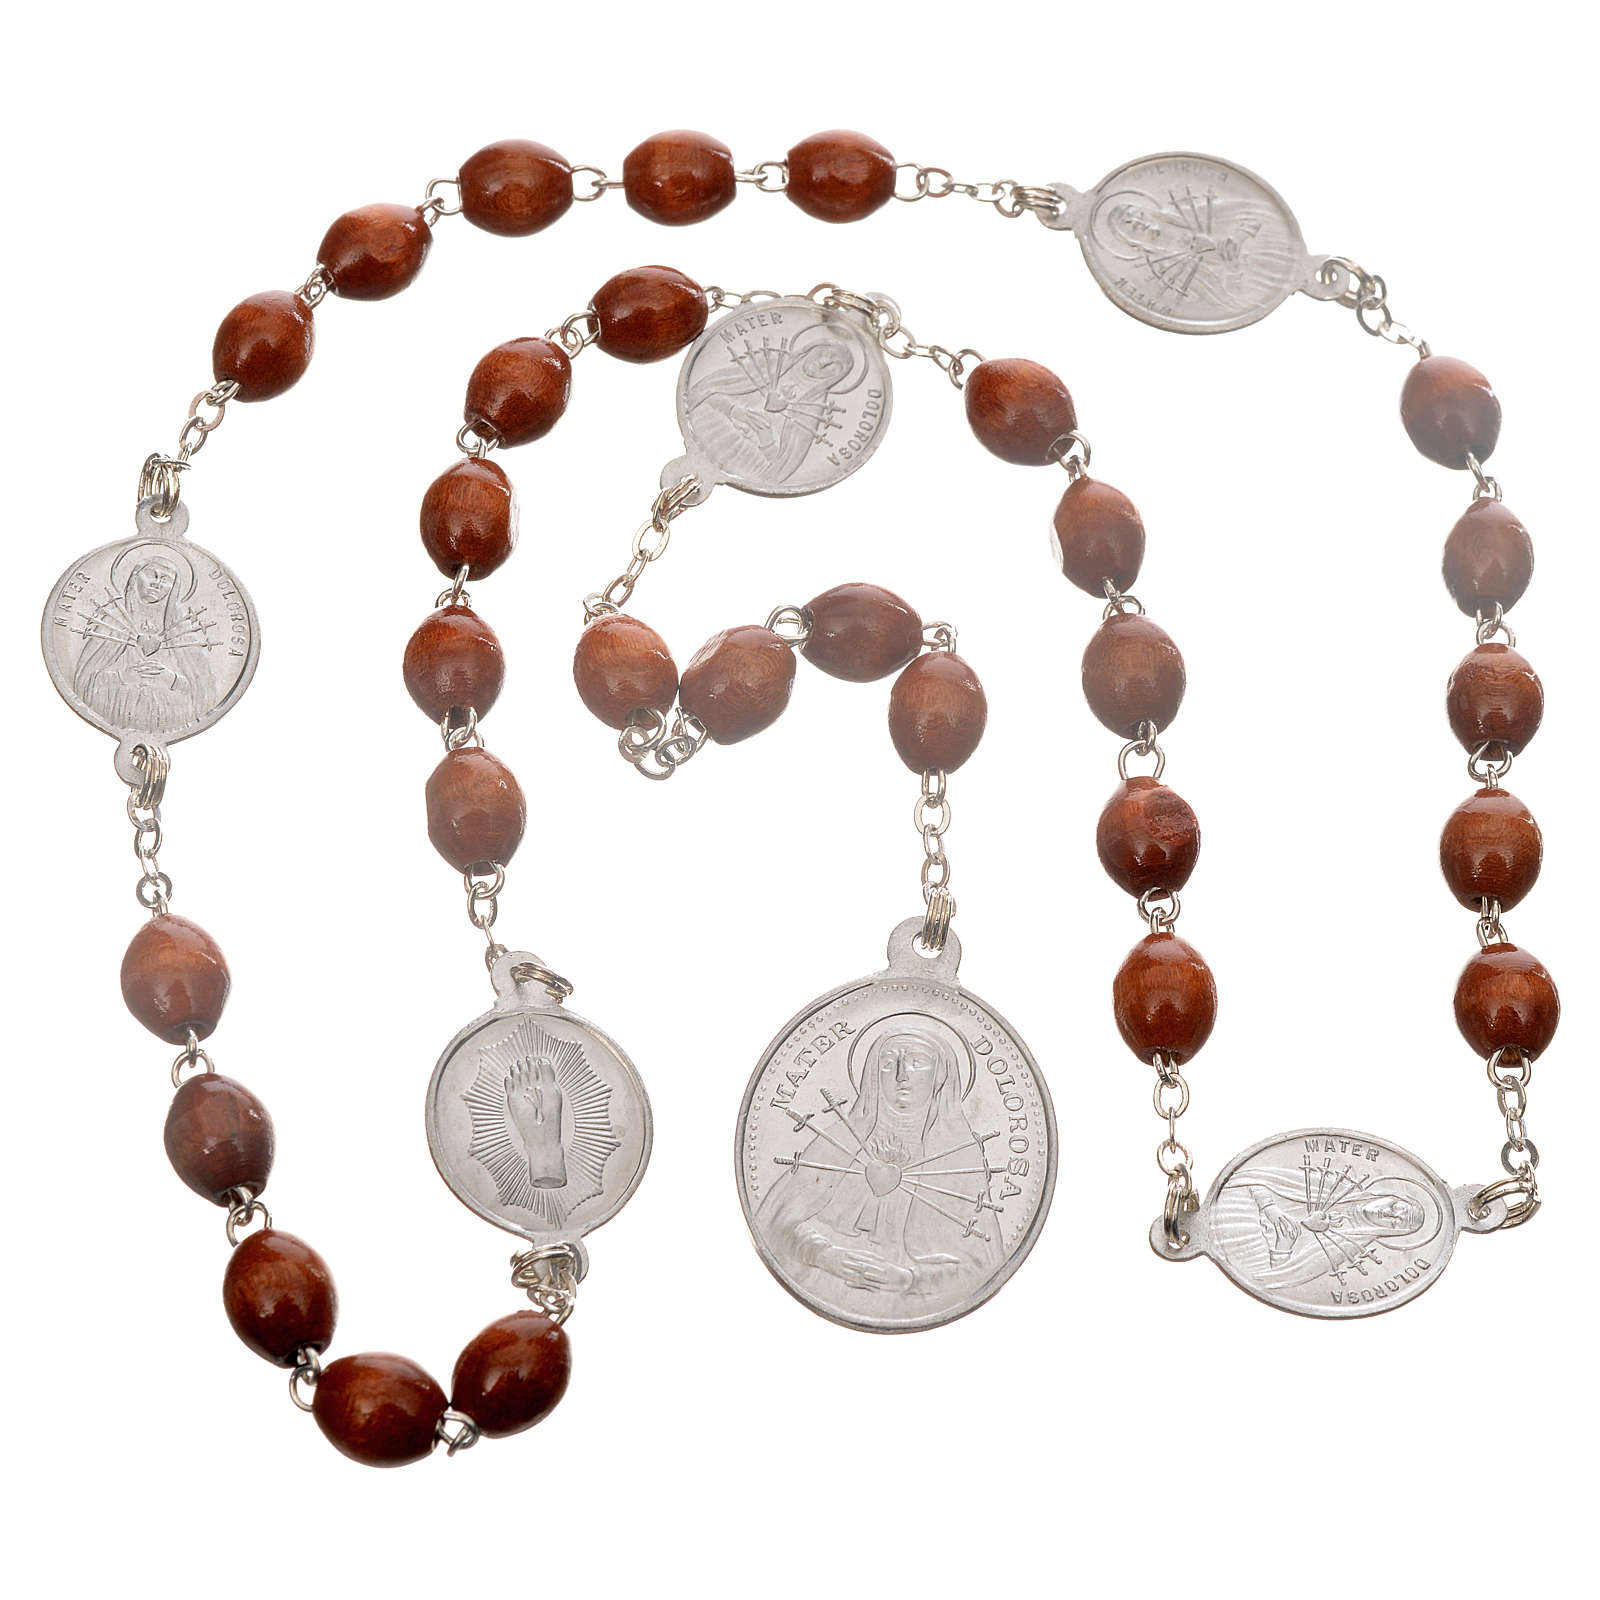 Rosary dedicated to Our Lady of the Five Wounds 4